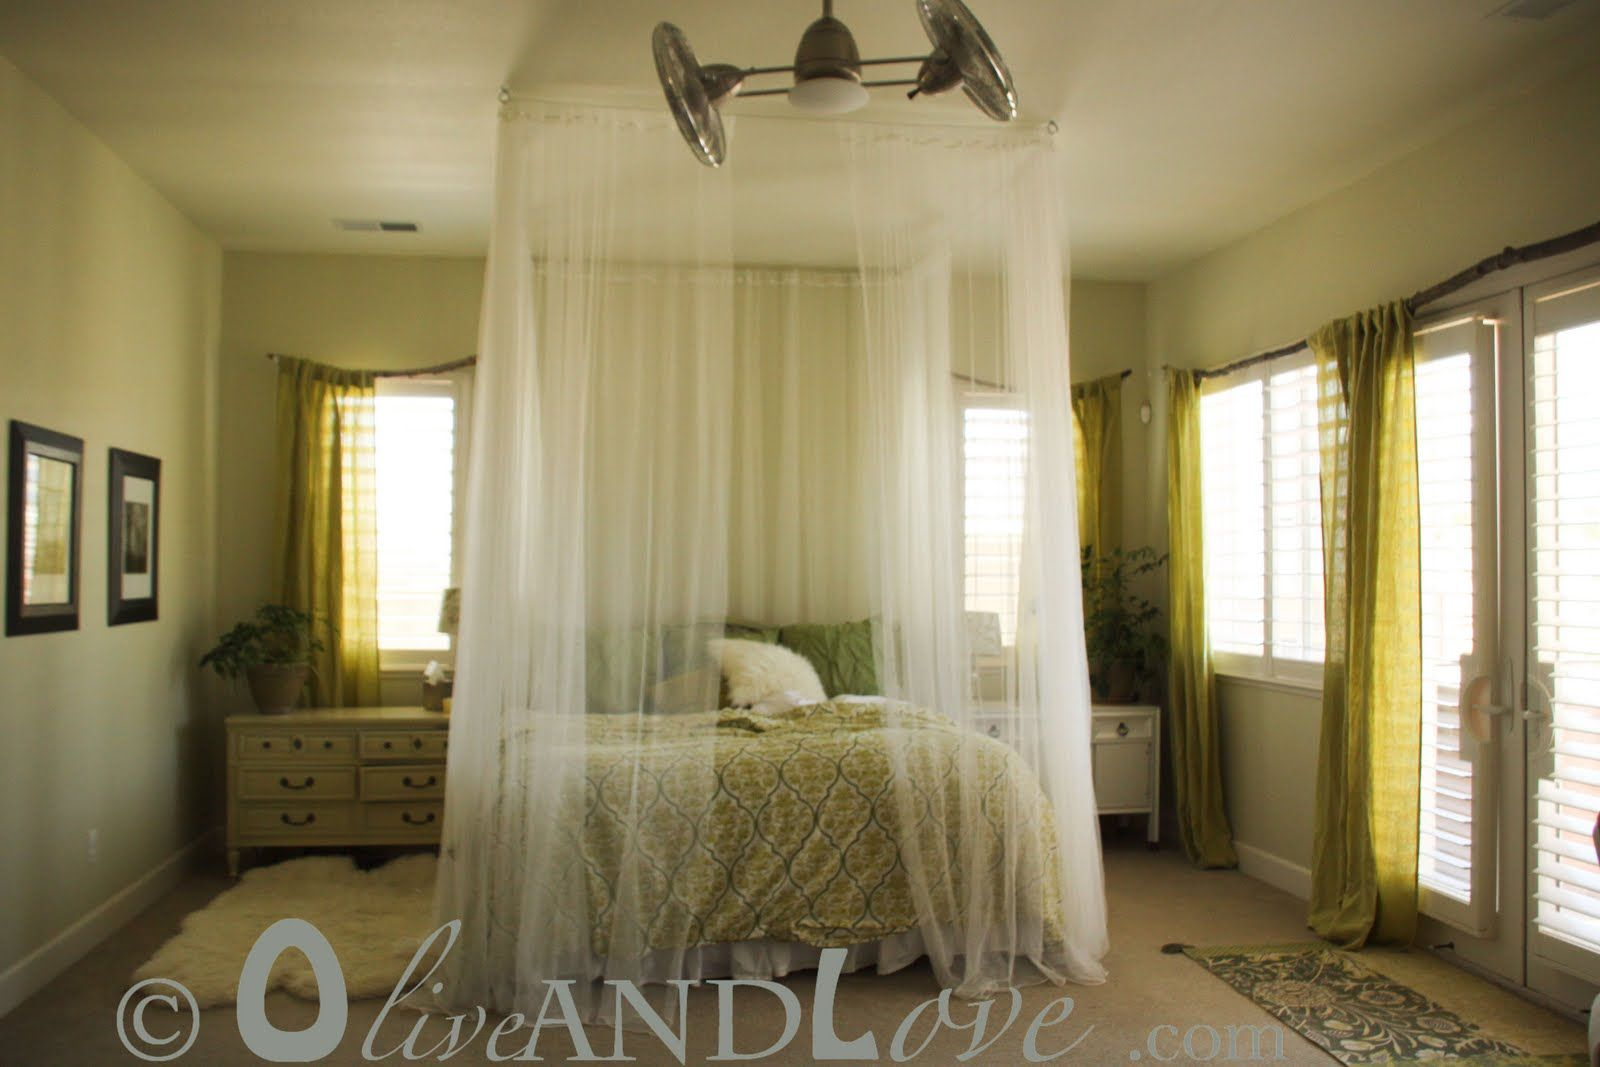 Bedroom  Outstanding White Canopy Bed Curtains With White Cover Beds As Awesome Canopy Beds Diy Canopy Bed. Canopy Beds For The Modern. & tree branch curtain rod mosquito netting around bed | Castle ...